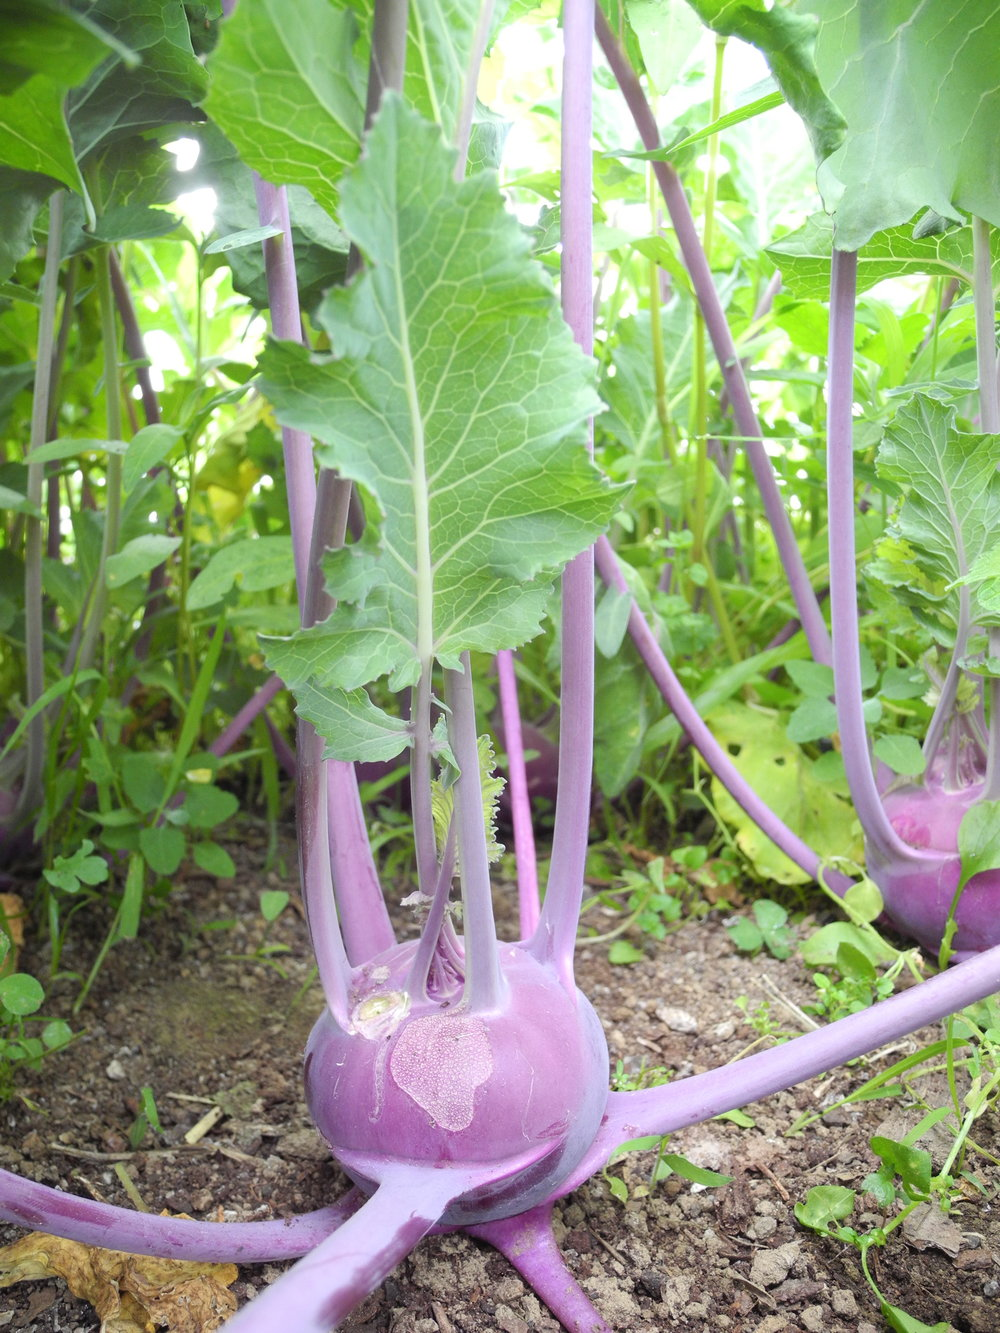 A peek at the spring crop of kohlrabi - alien like!